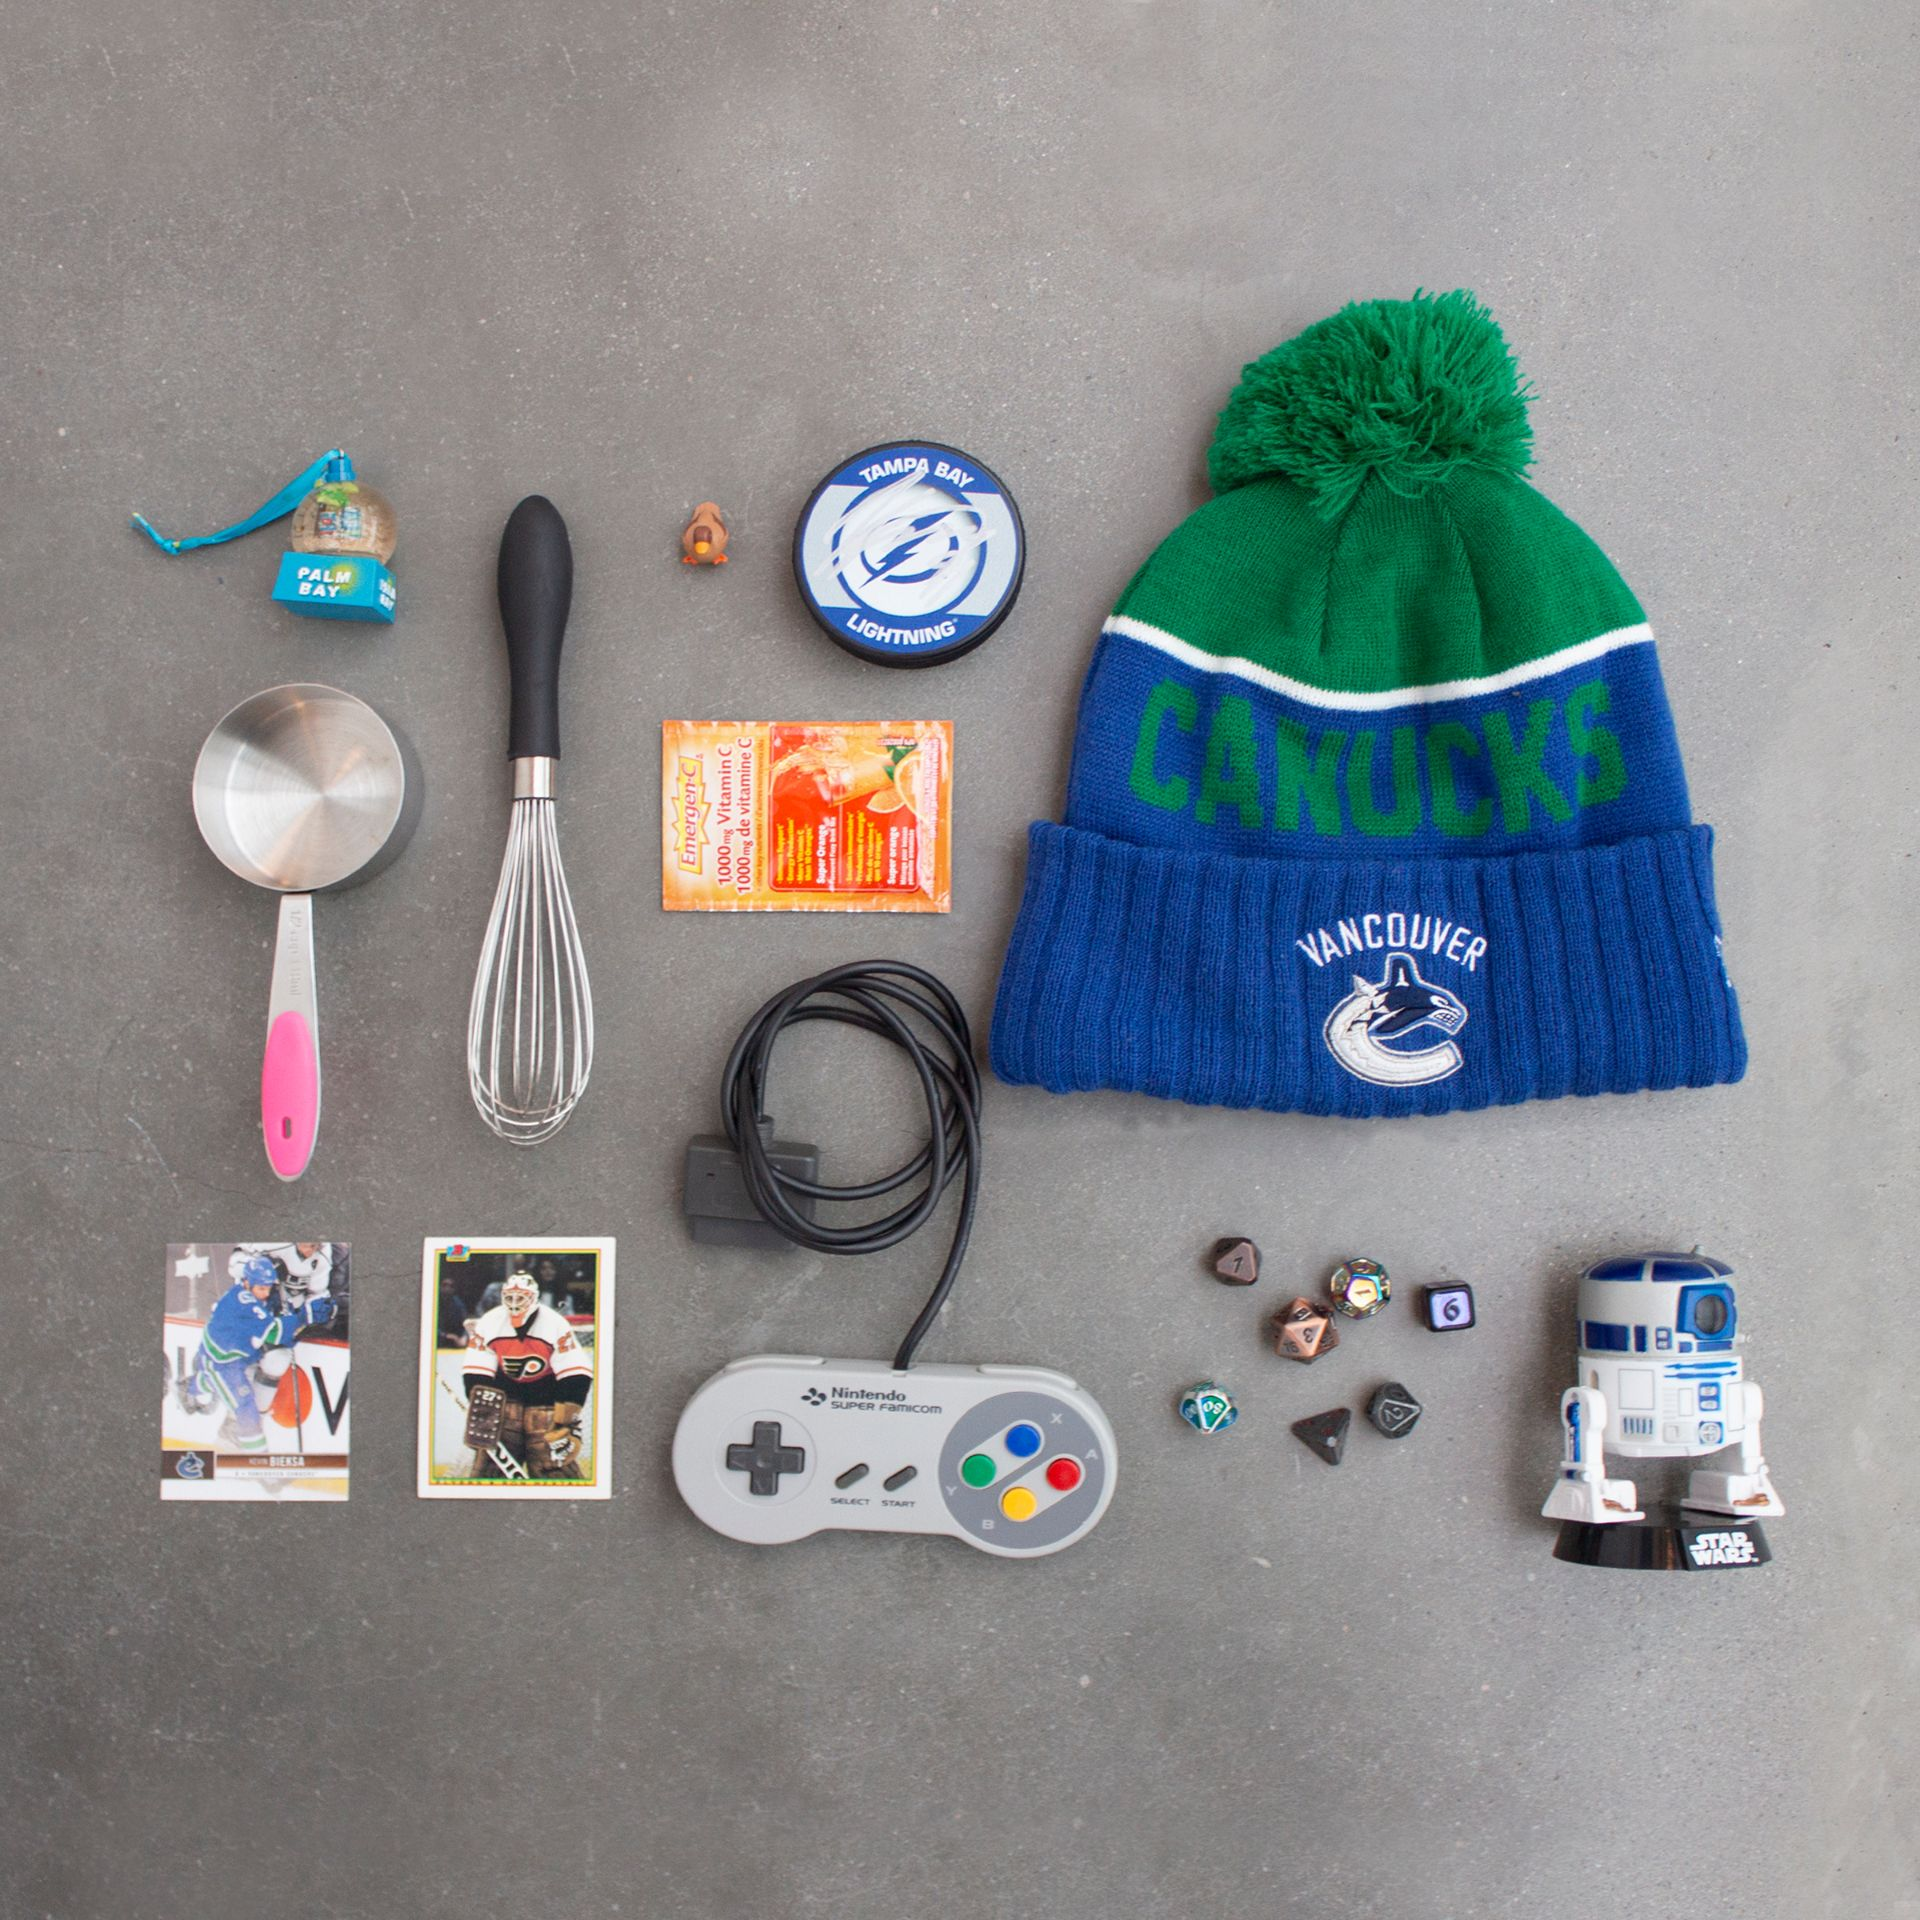 Colin's flat lay of items representing his personality.